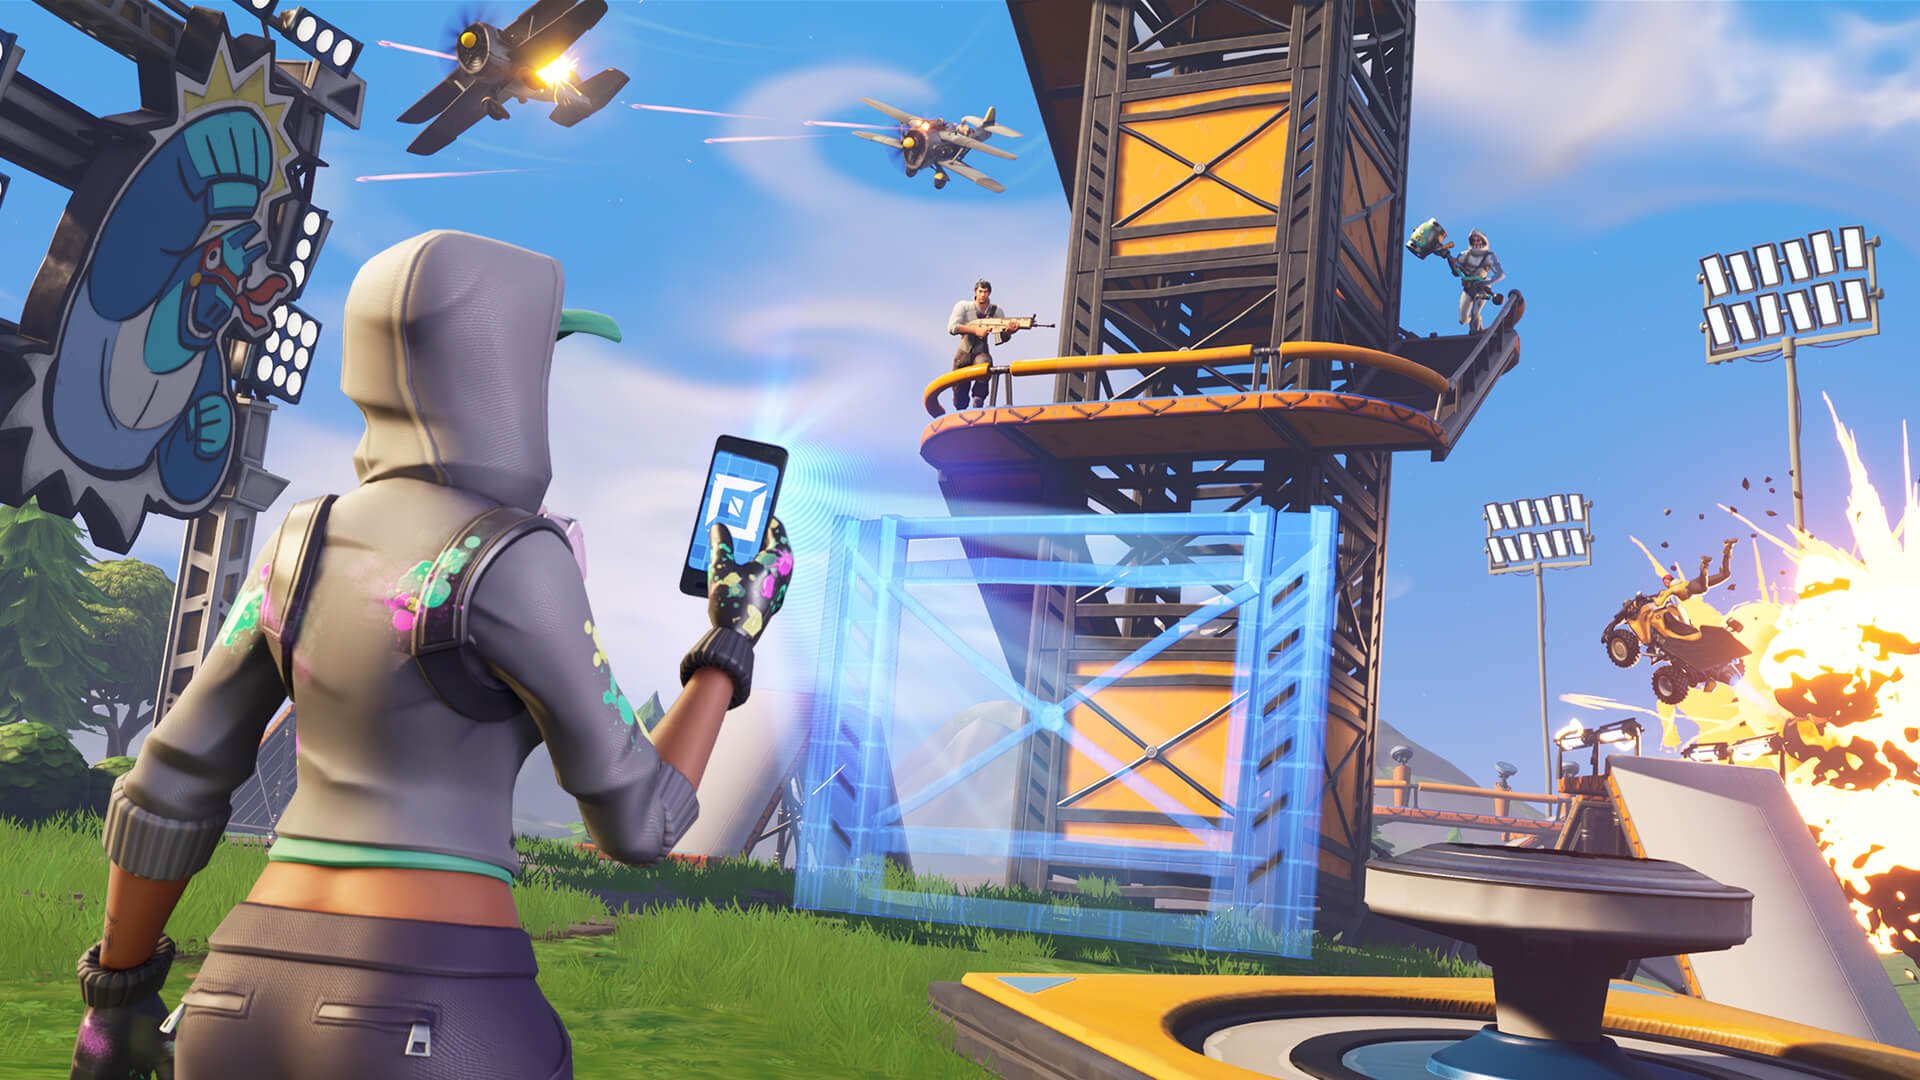 How To Install Fortnite On Android Mobile Devices Shacknews